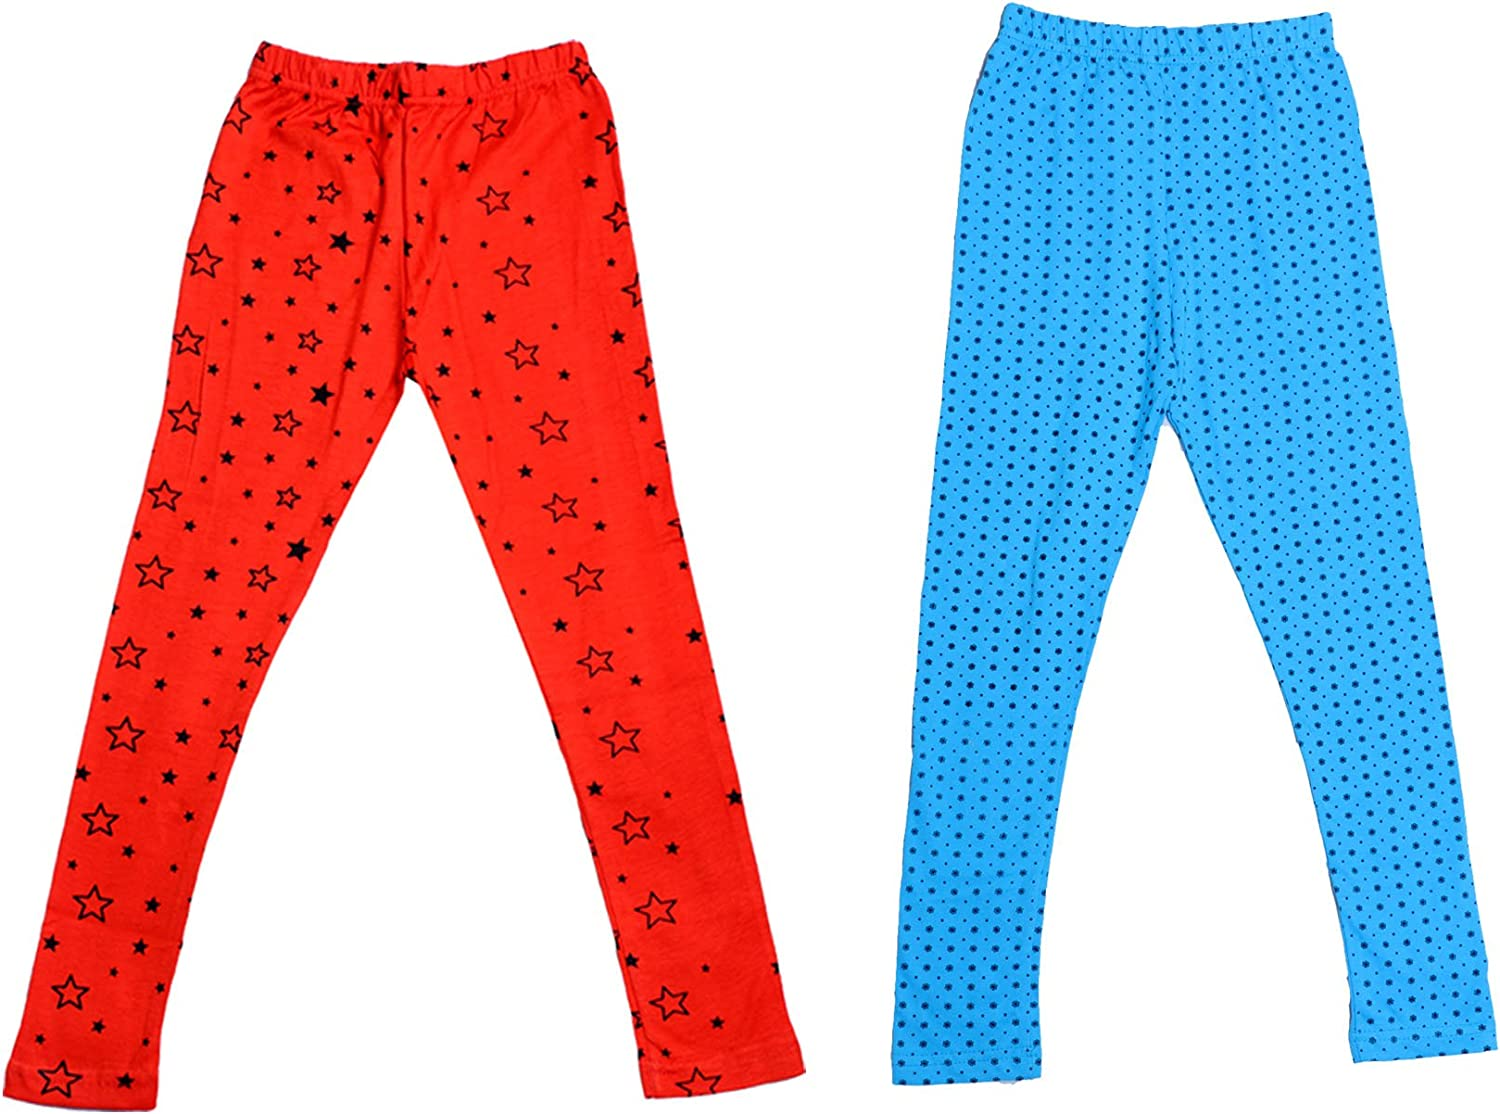 Pack Of 2 indiWeaves Girls Super Soft and Stylish Cotton Printed Legging